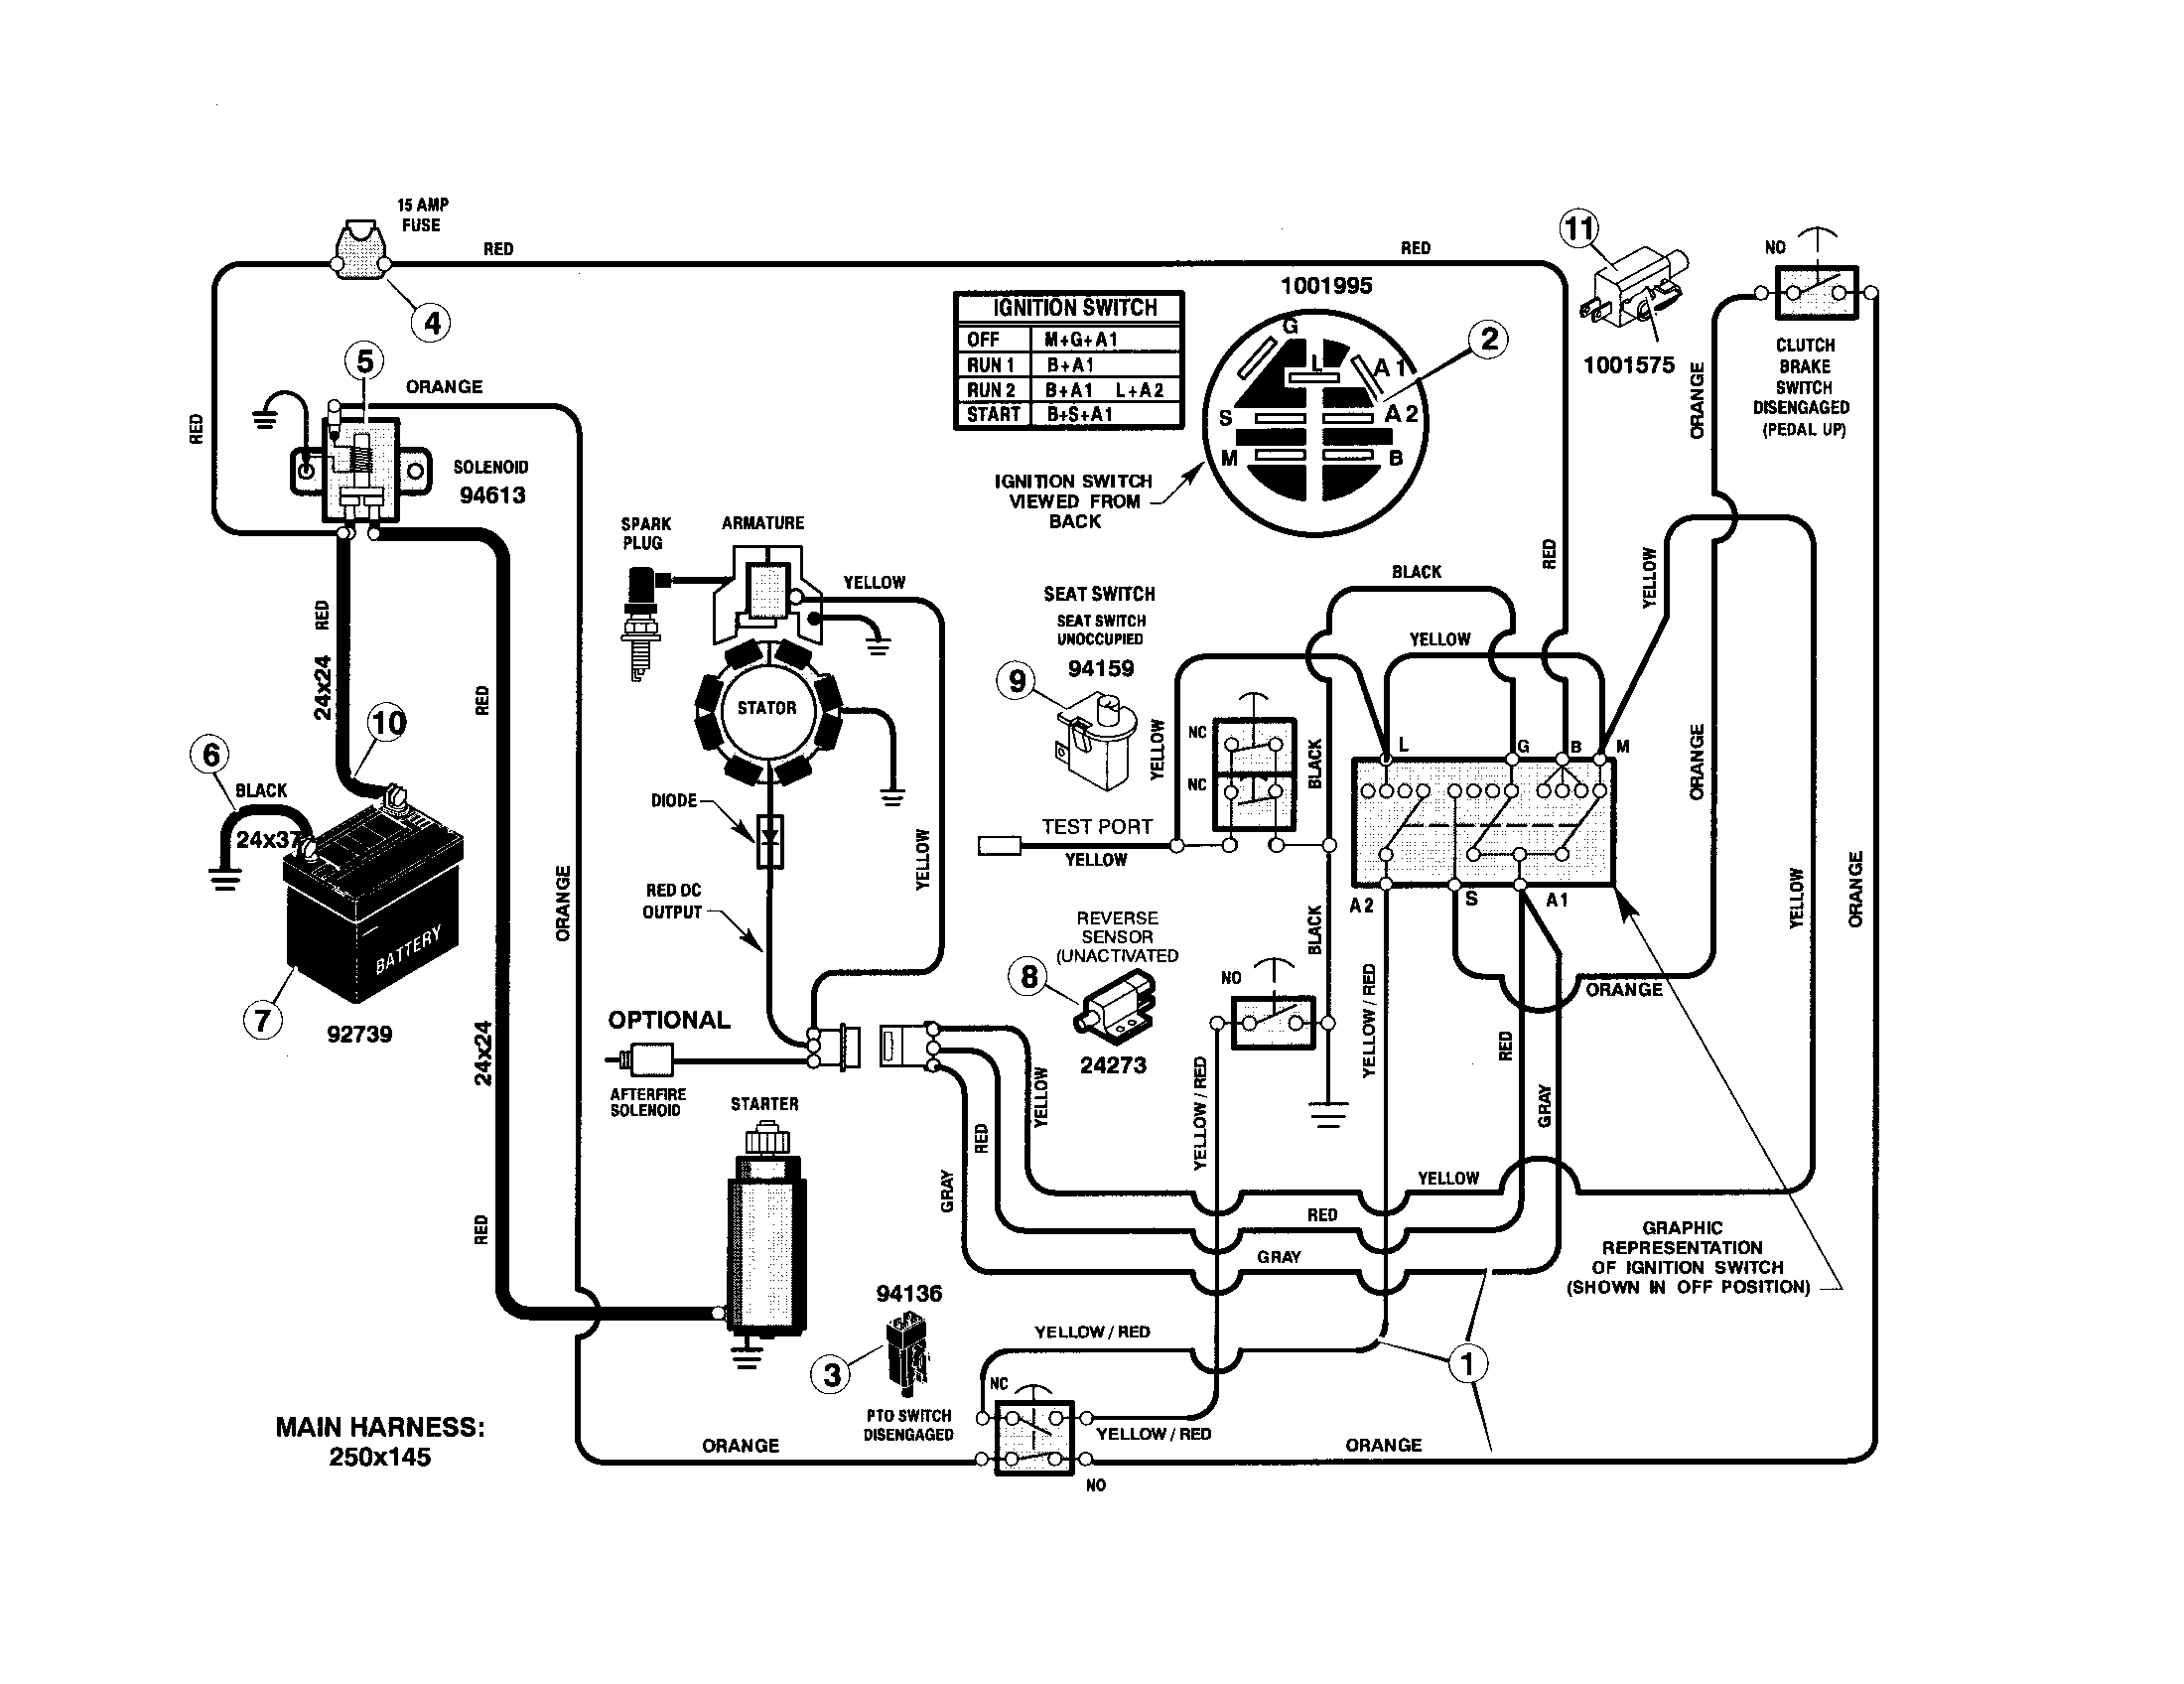 wiring diagram for sears lawn mower